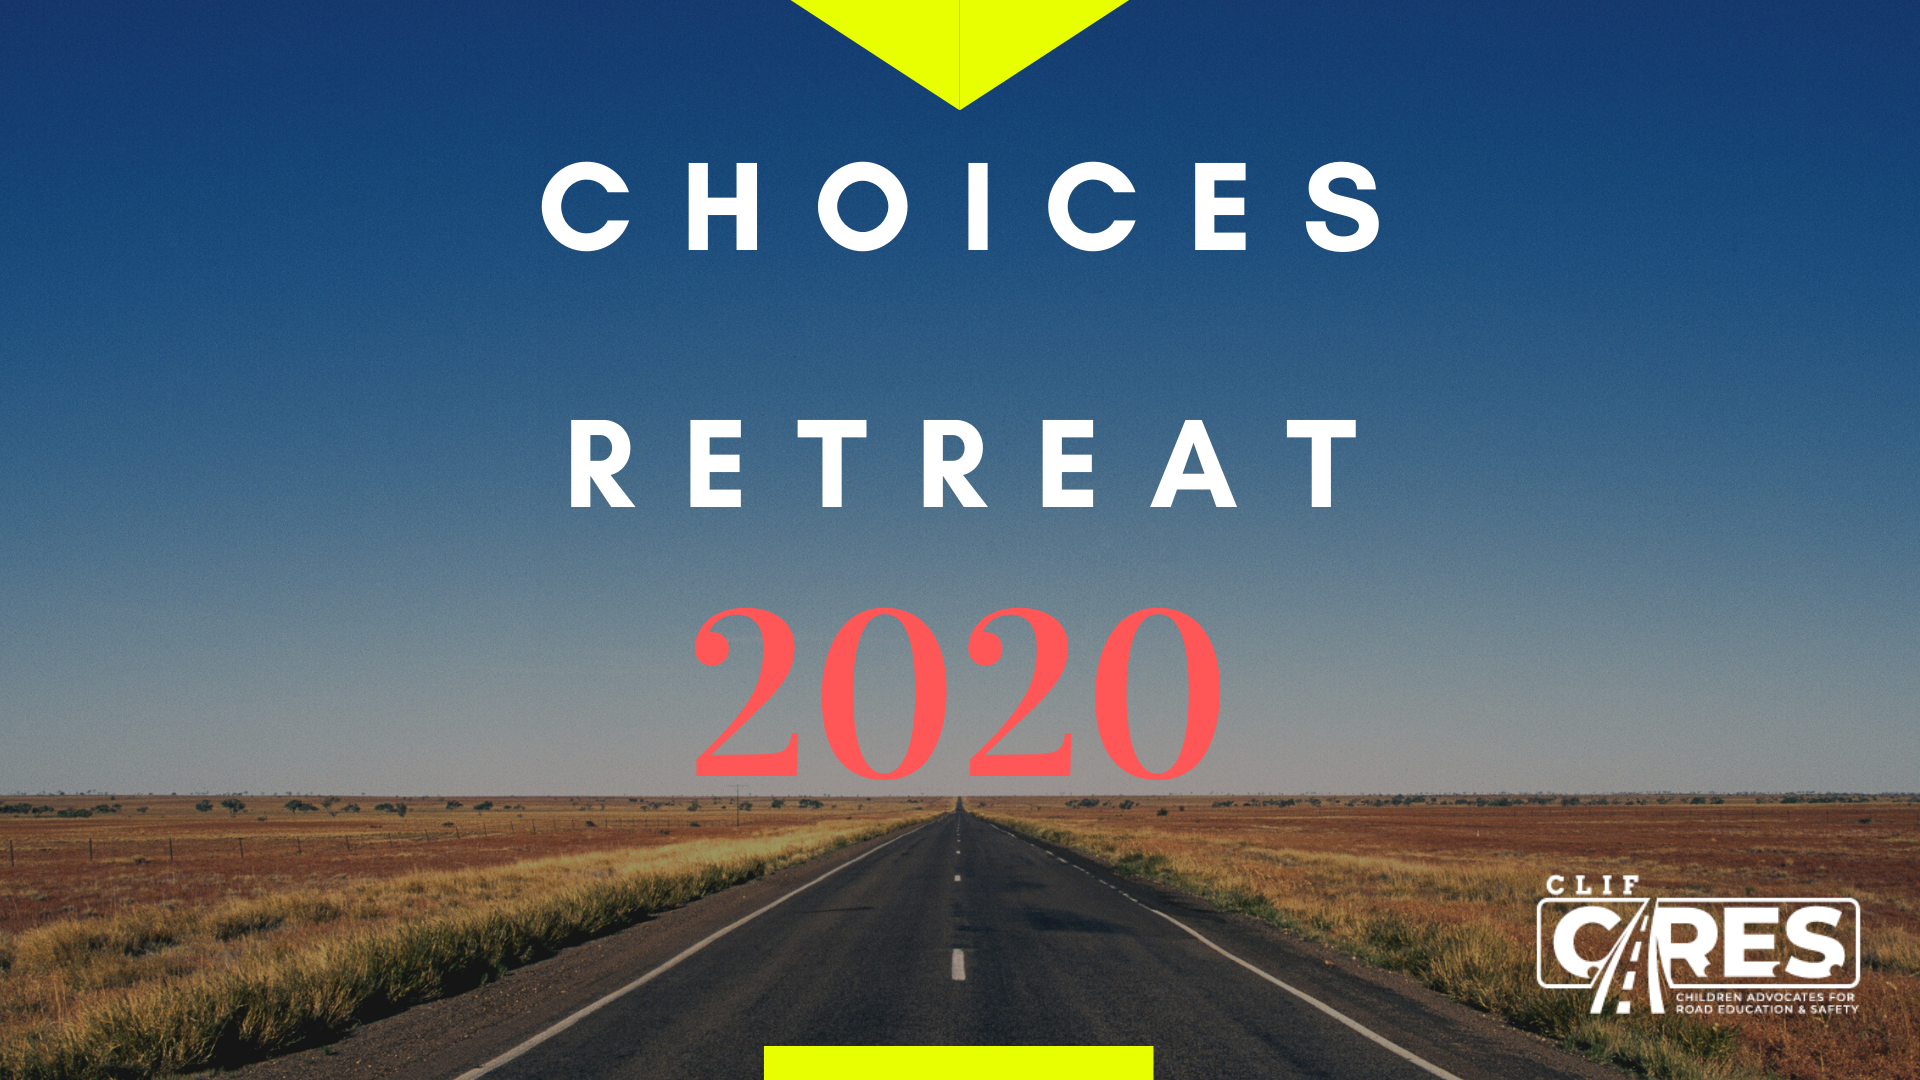 CHOICE RETREAT